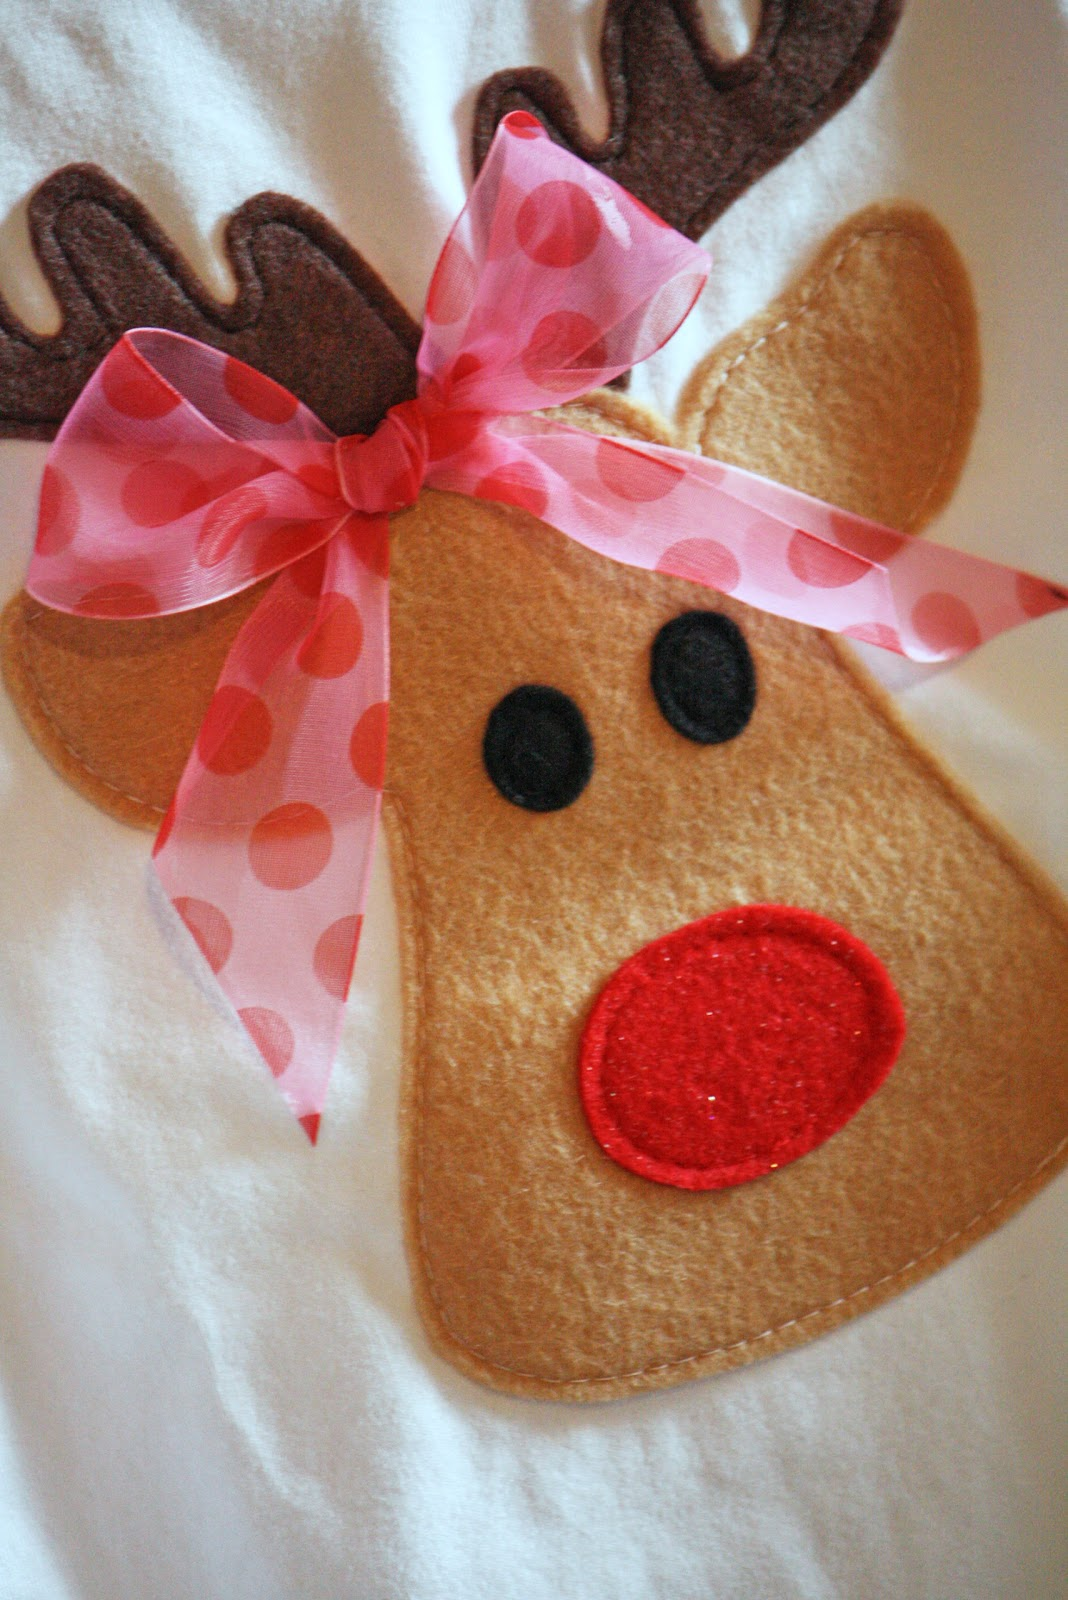 Felt Christmas Reindeer Patterns http://noodlesandmilk.blogspot.com/2010/11/too-cute-reindeer-shirt-tutorial.html